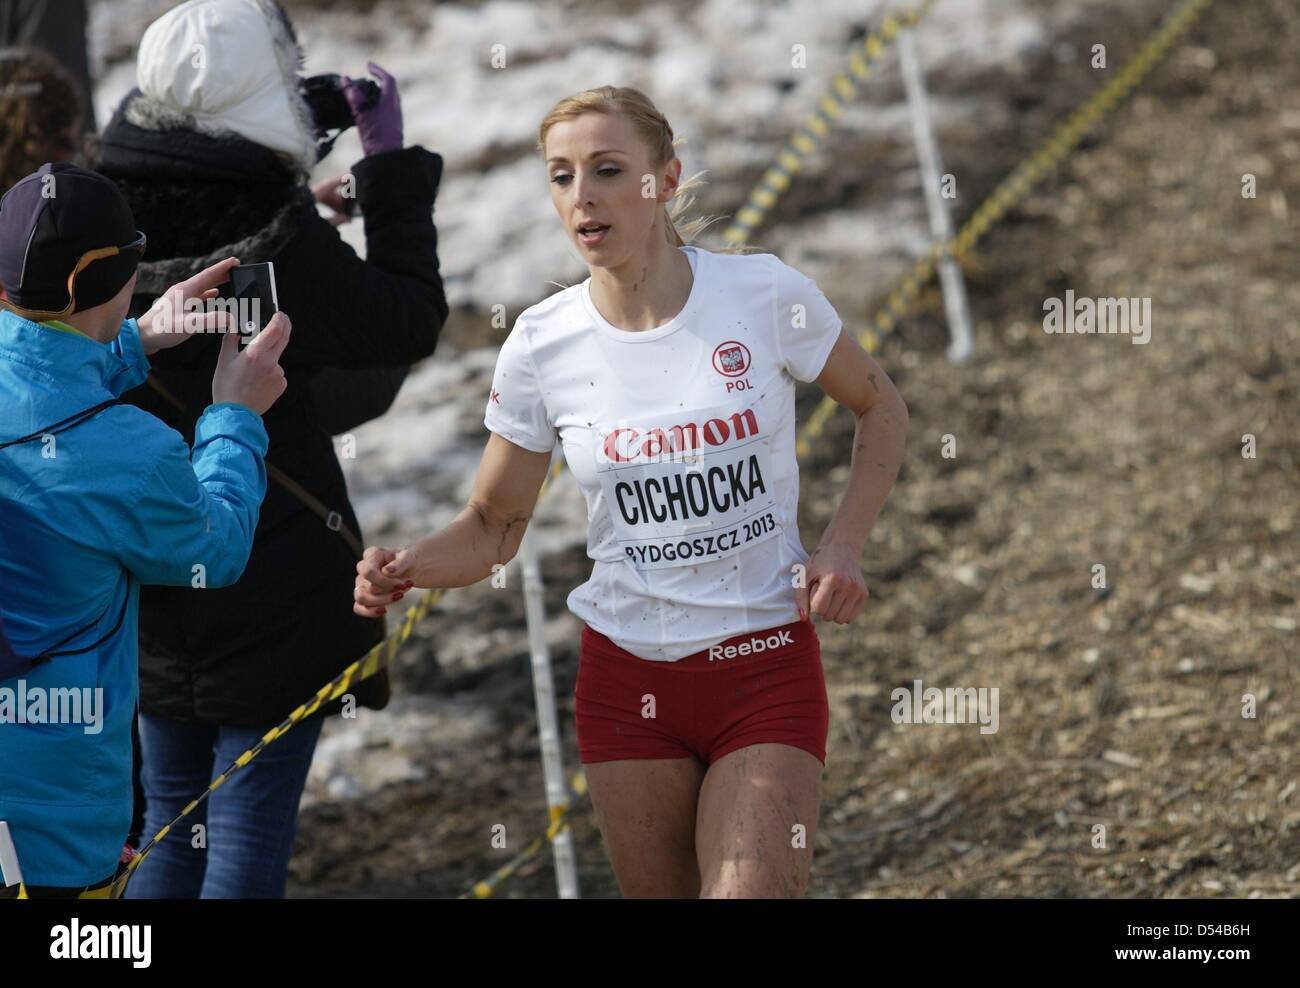 Bydgoszcz, Poland 24th, March 2013 IAAF World Cross Country Chamiponships. Senior Race Woman.  Pictured: Angelika - Stock Image